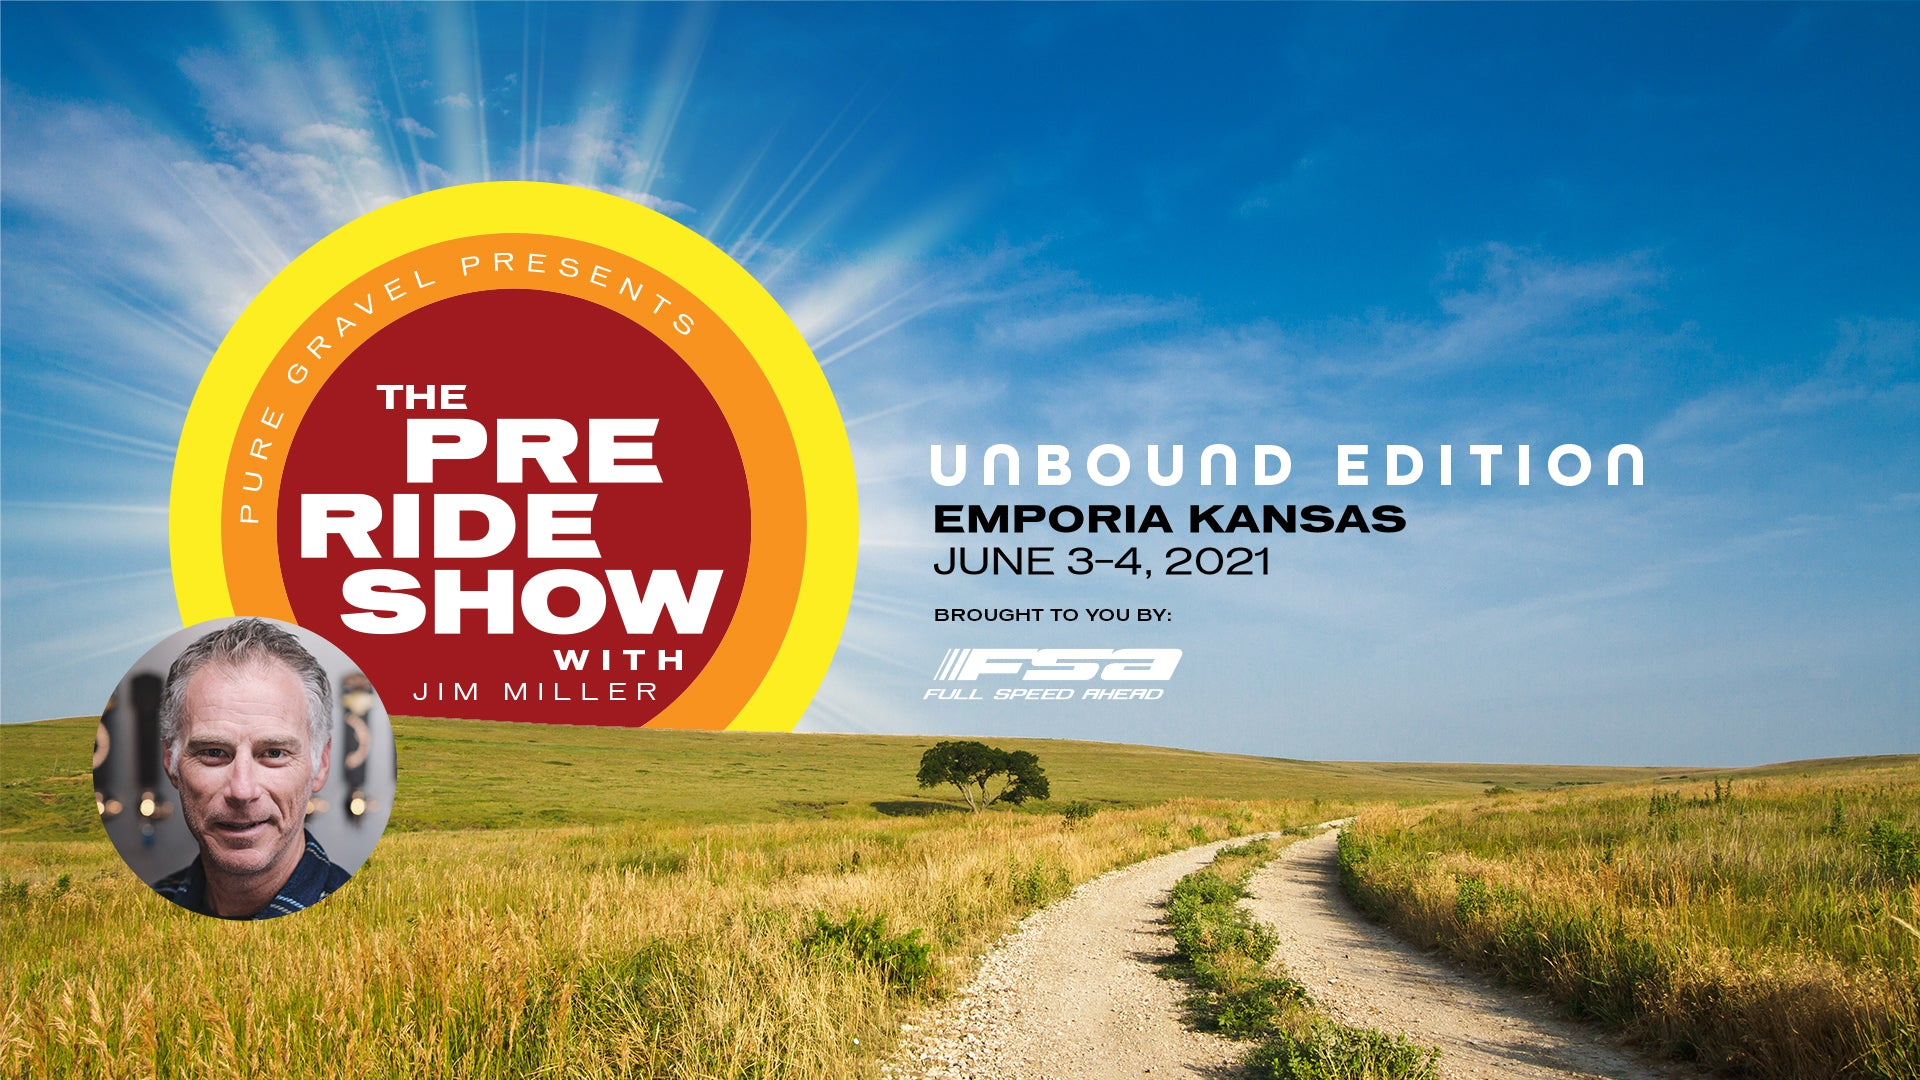 THE PRE RIDE SHOW WITH JIM MLLER